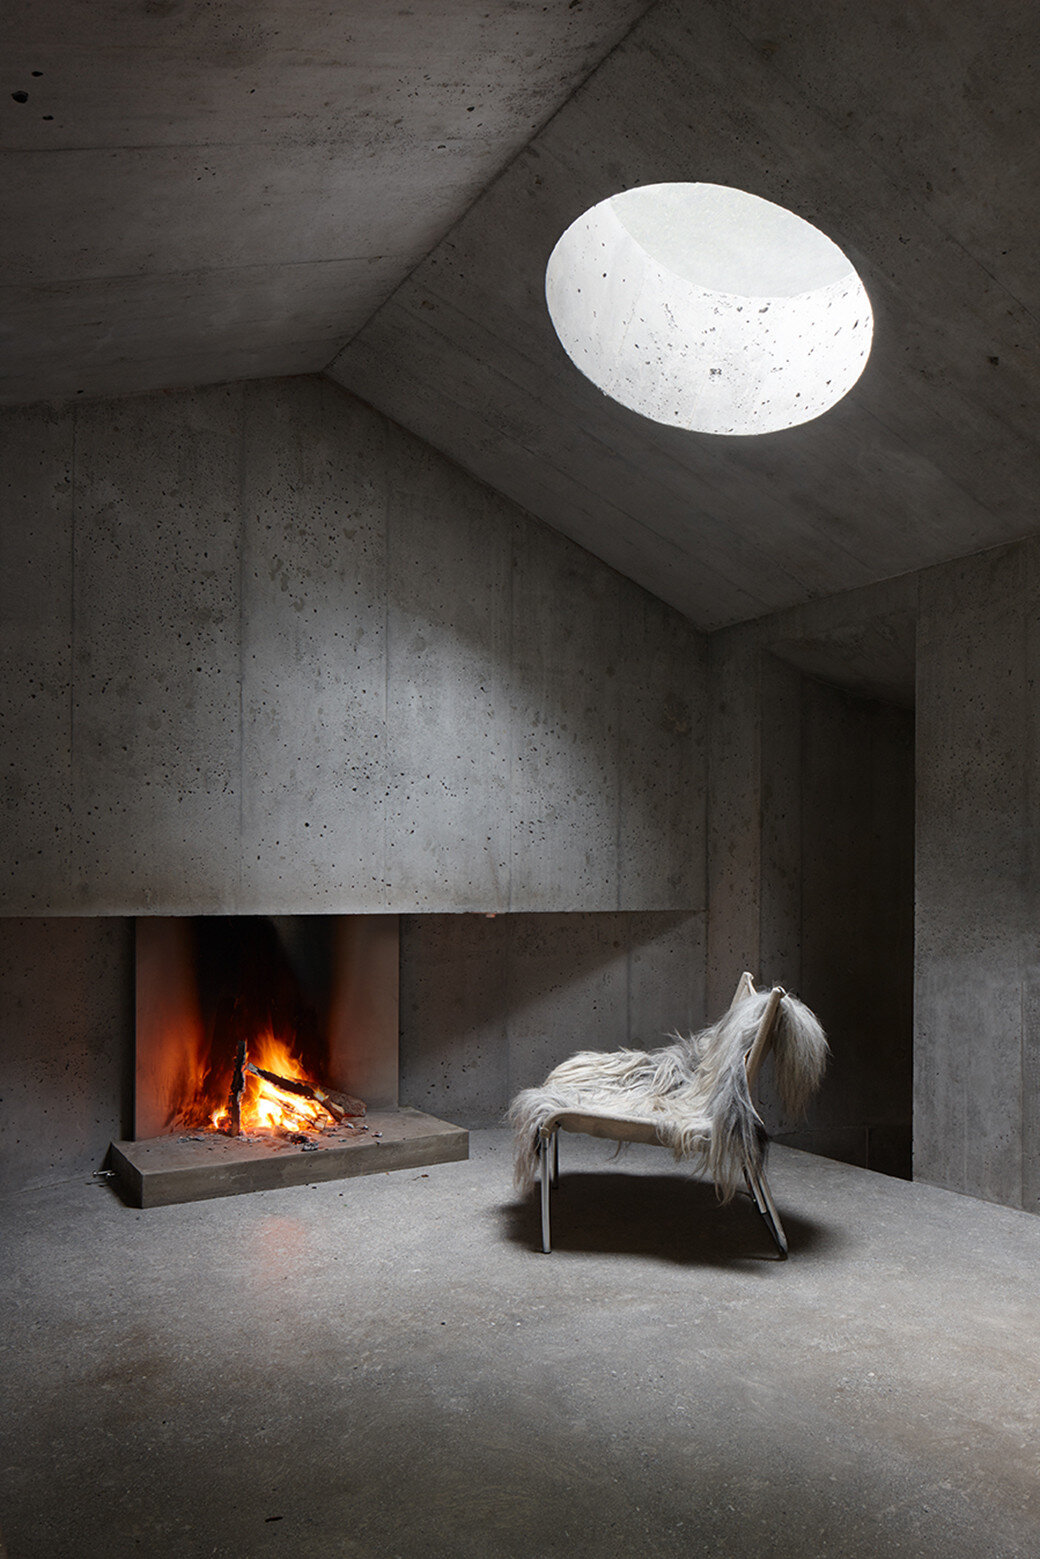 Fascinating concrete cabin in the Swiss Alps by German architecture studio Nickisch Sano Walder Architekten (3)